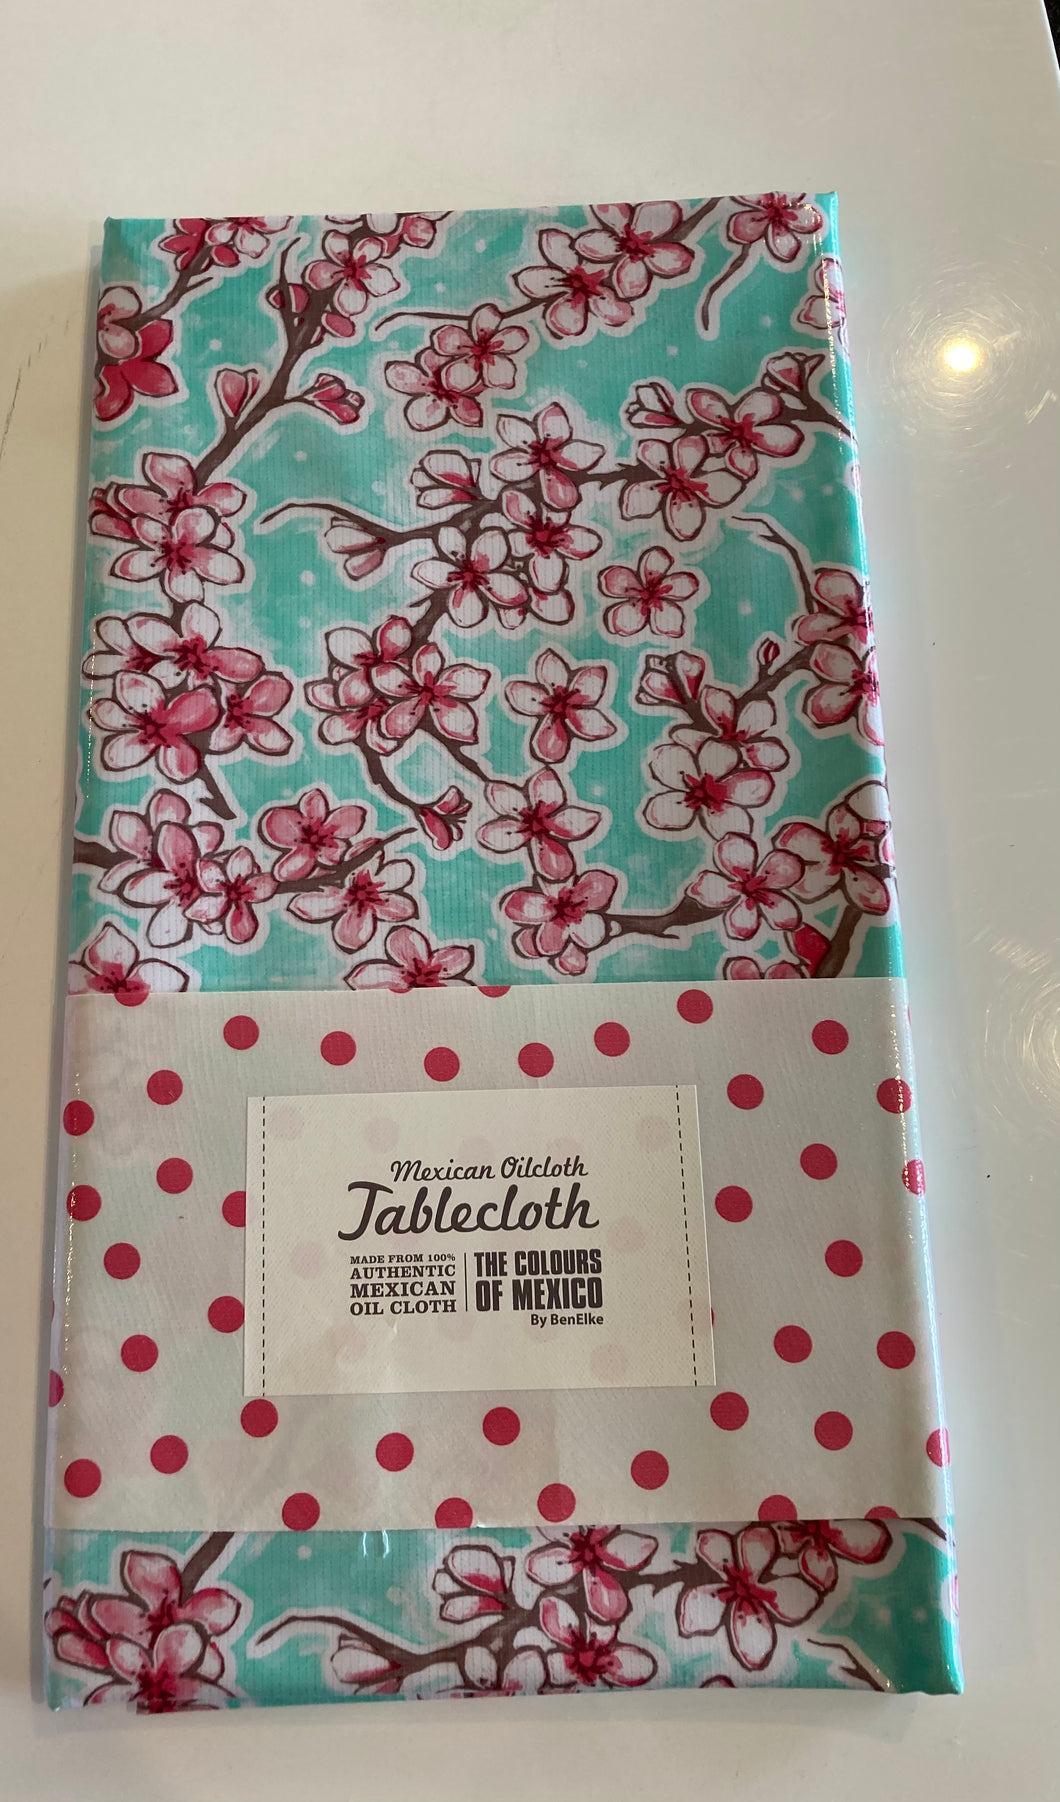 Mexican Oilcloth Tablecloth - Cherryblossom Mint